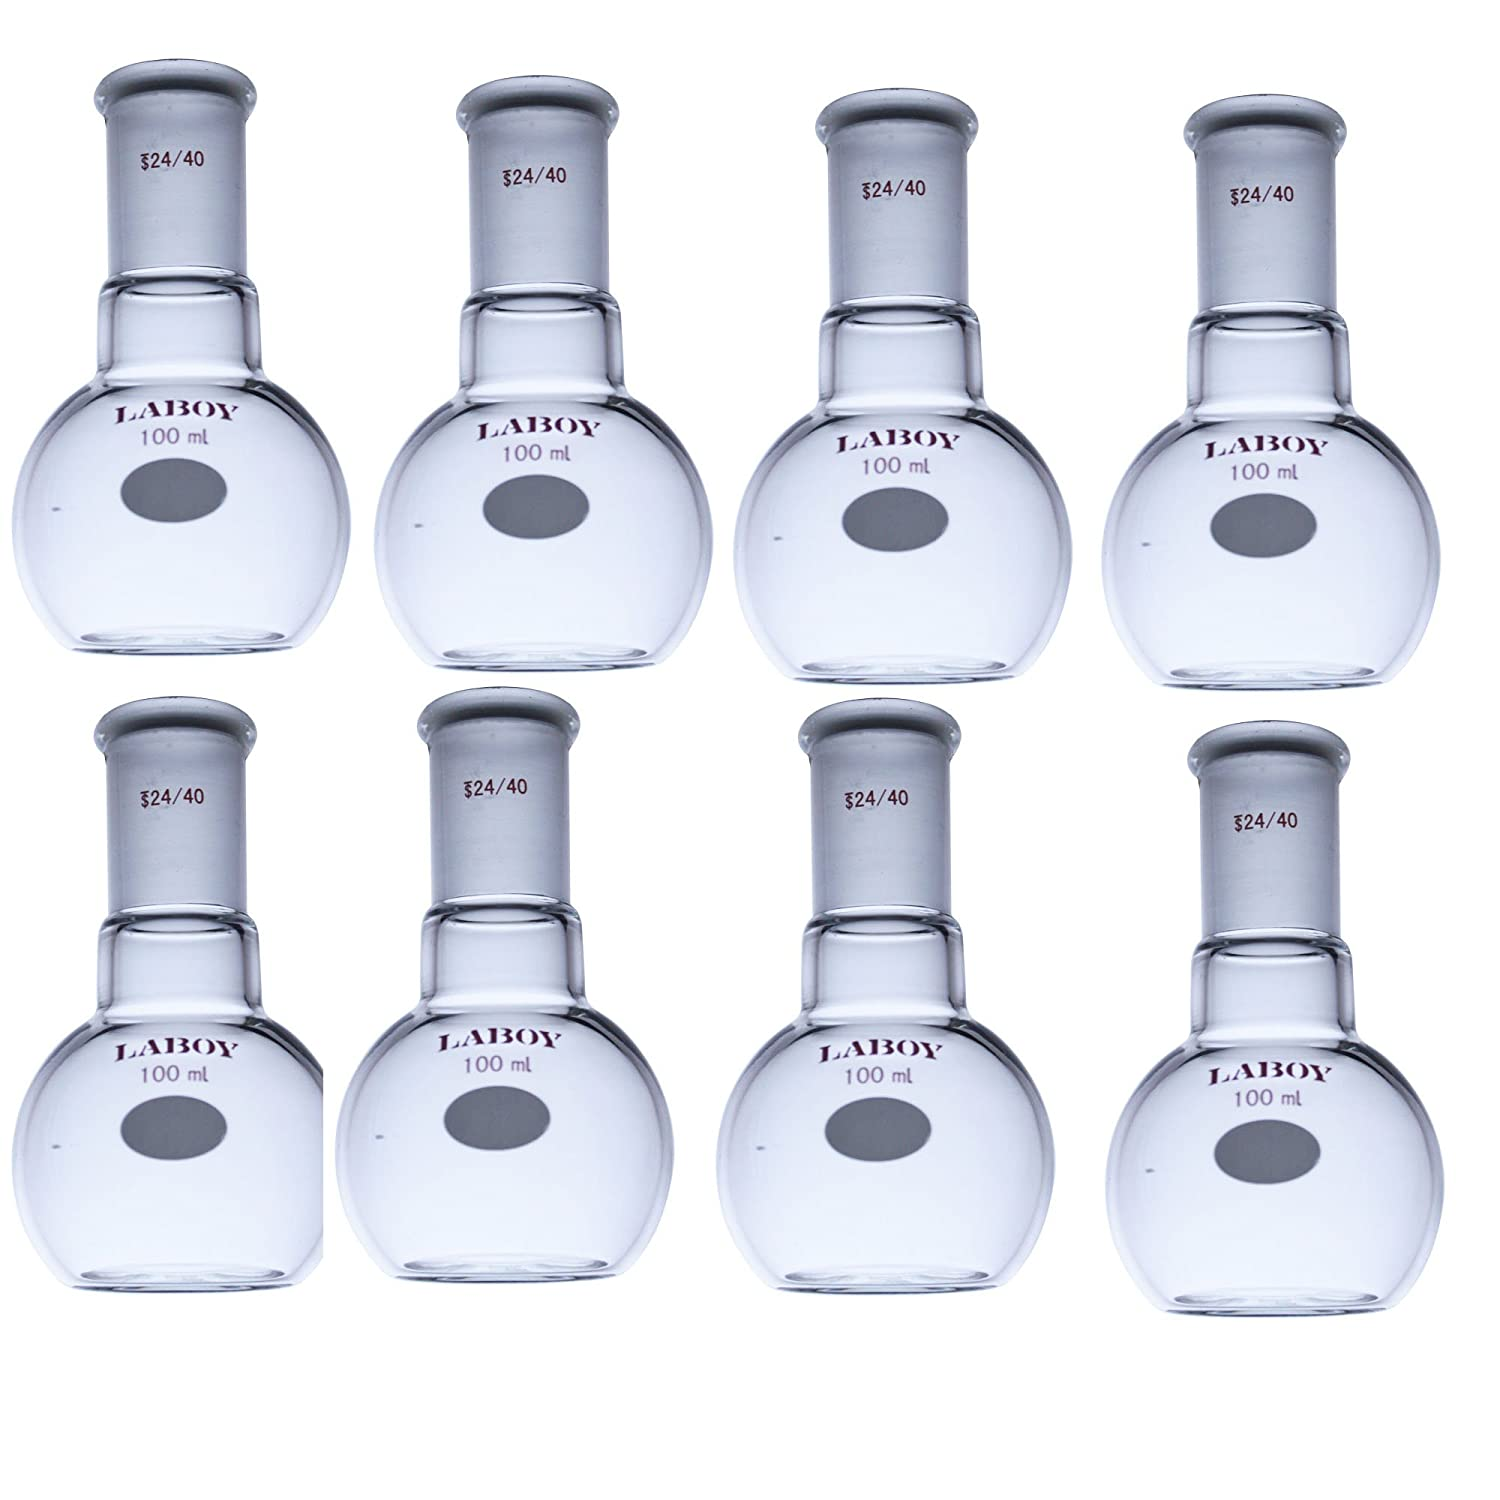 Laboy Glass Single Neck Flat Bottom Boiling Flask 100mL with 24/40 Joint Heavy Wall Distillation Receiving Apparatus Organic Chemistry Lab Glassware (Pack of 8)